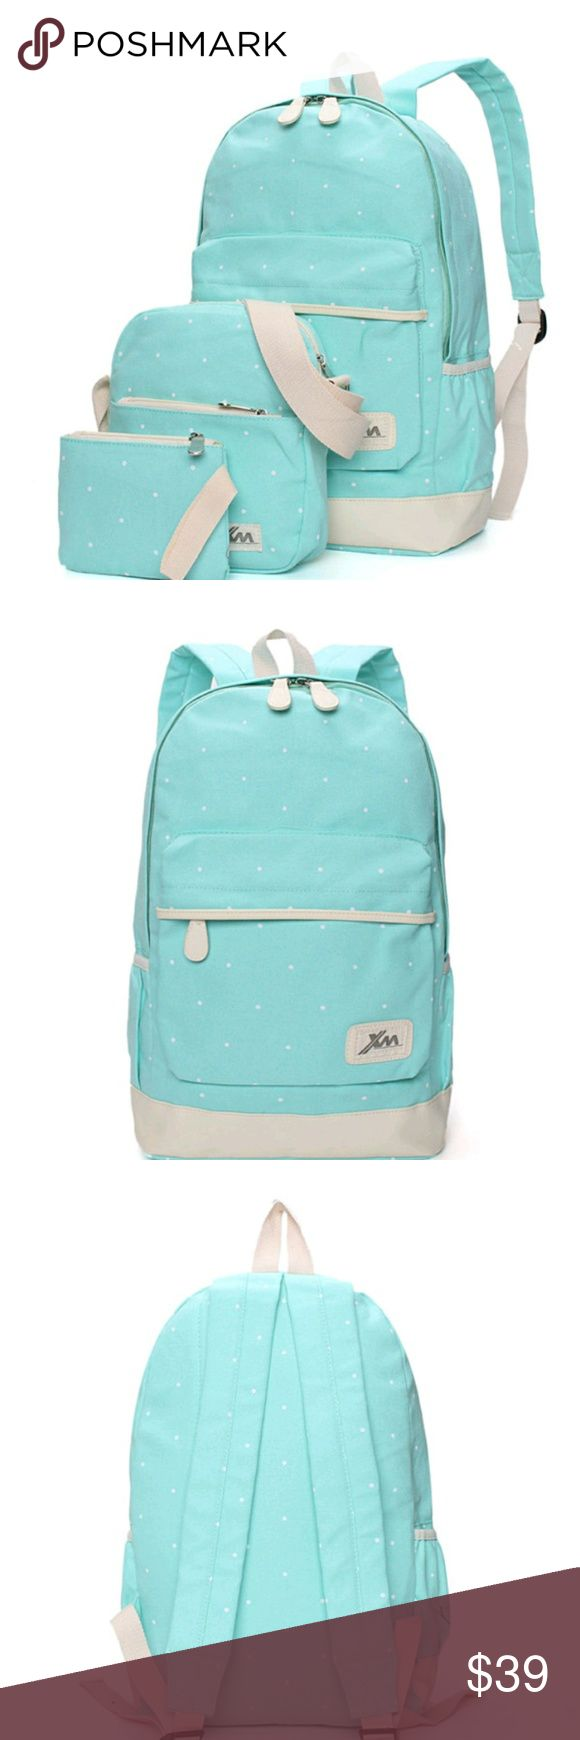 Light Blue 3 pcs. Backpack Set w/ Shoulder Bg NWT 3 pcs. Light blue with white polka dots backpack set. Comes with backpack, shoulder bag, and small coin purse. Main backpack has main zipper pocket, front zipper pocket, 2 inner zipper pockets, one open closure pocket, and bottle holder pouch on side. Holds tablet, binder, notebooks, textbooks, etc. Shoulder bag is perfect for lunch or make up! Coin purse for lunch money. Super cute, stylish and functional! Bags Backpacks